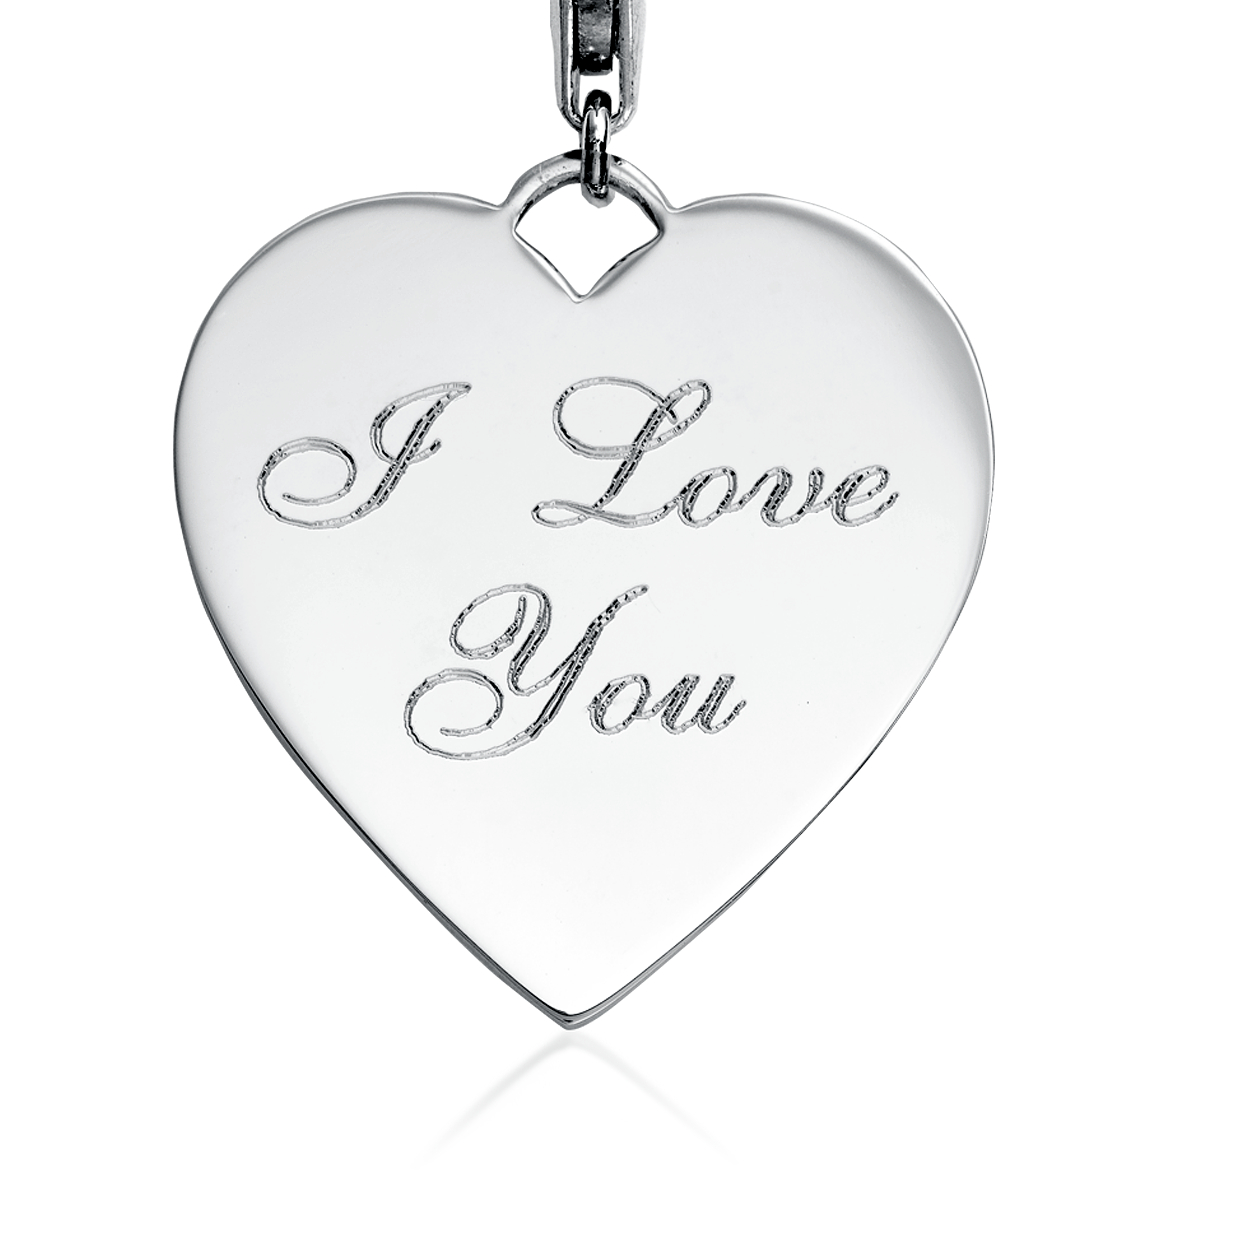 Engraveable I Love You Heart Charm in Sterling Silver